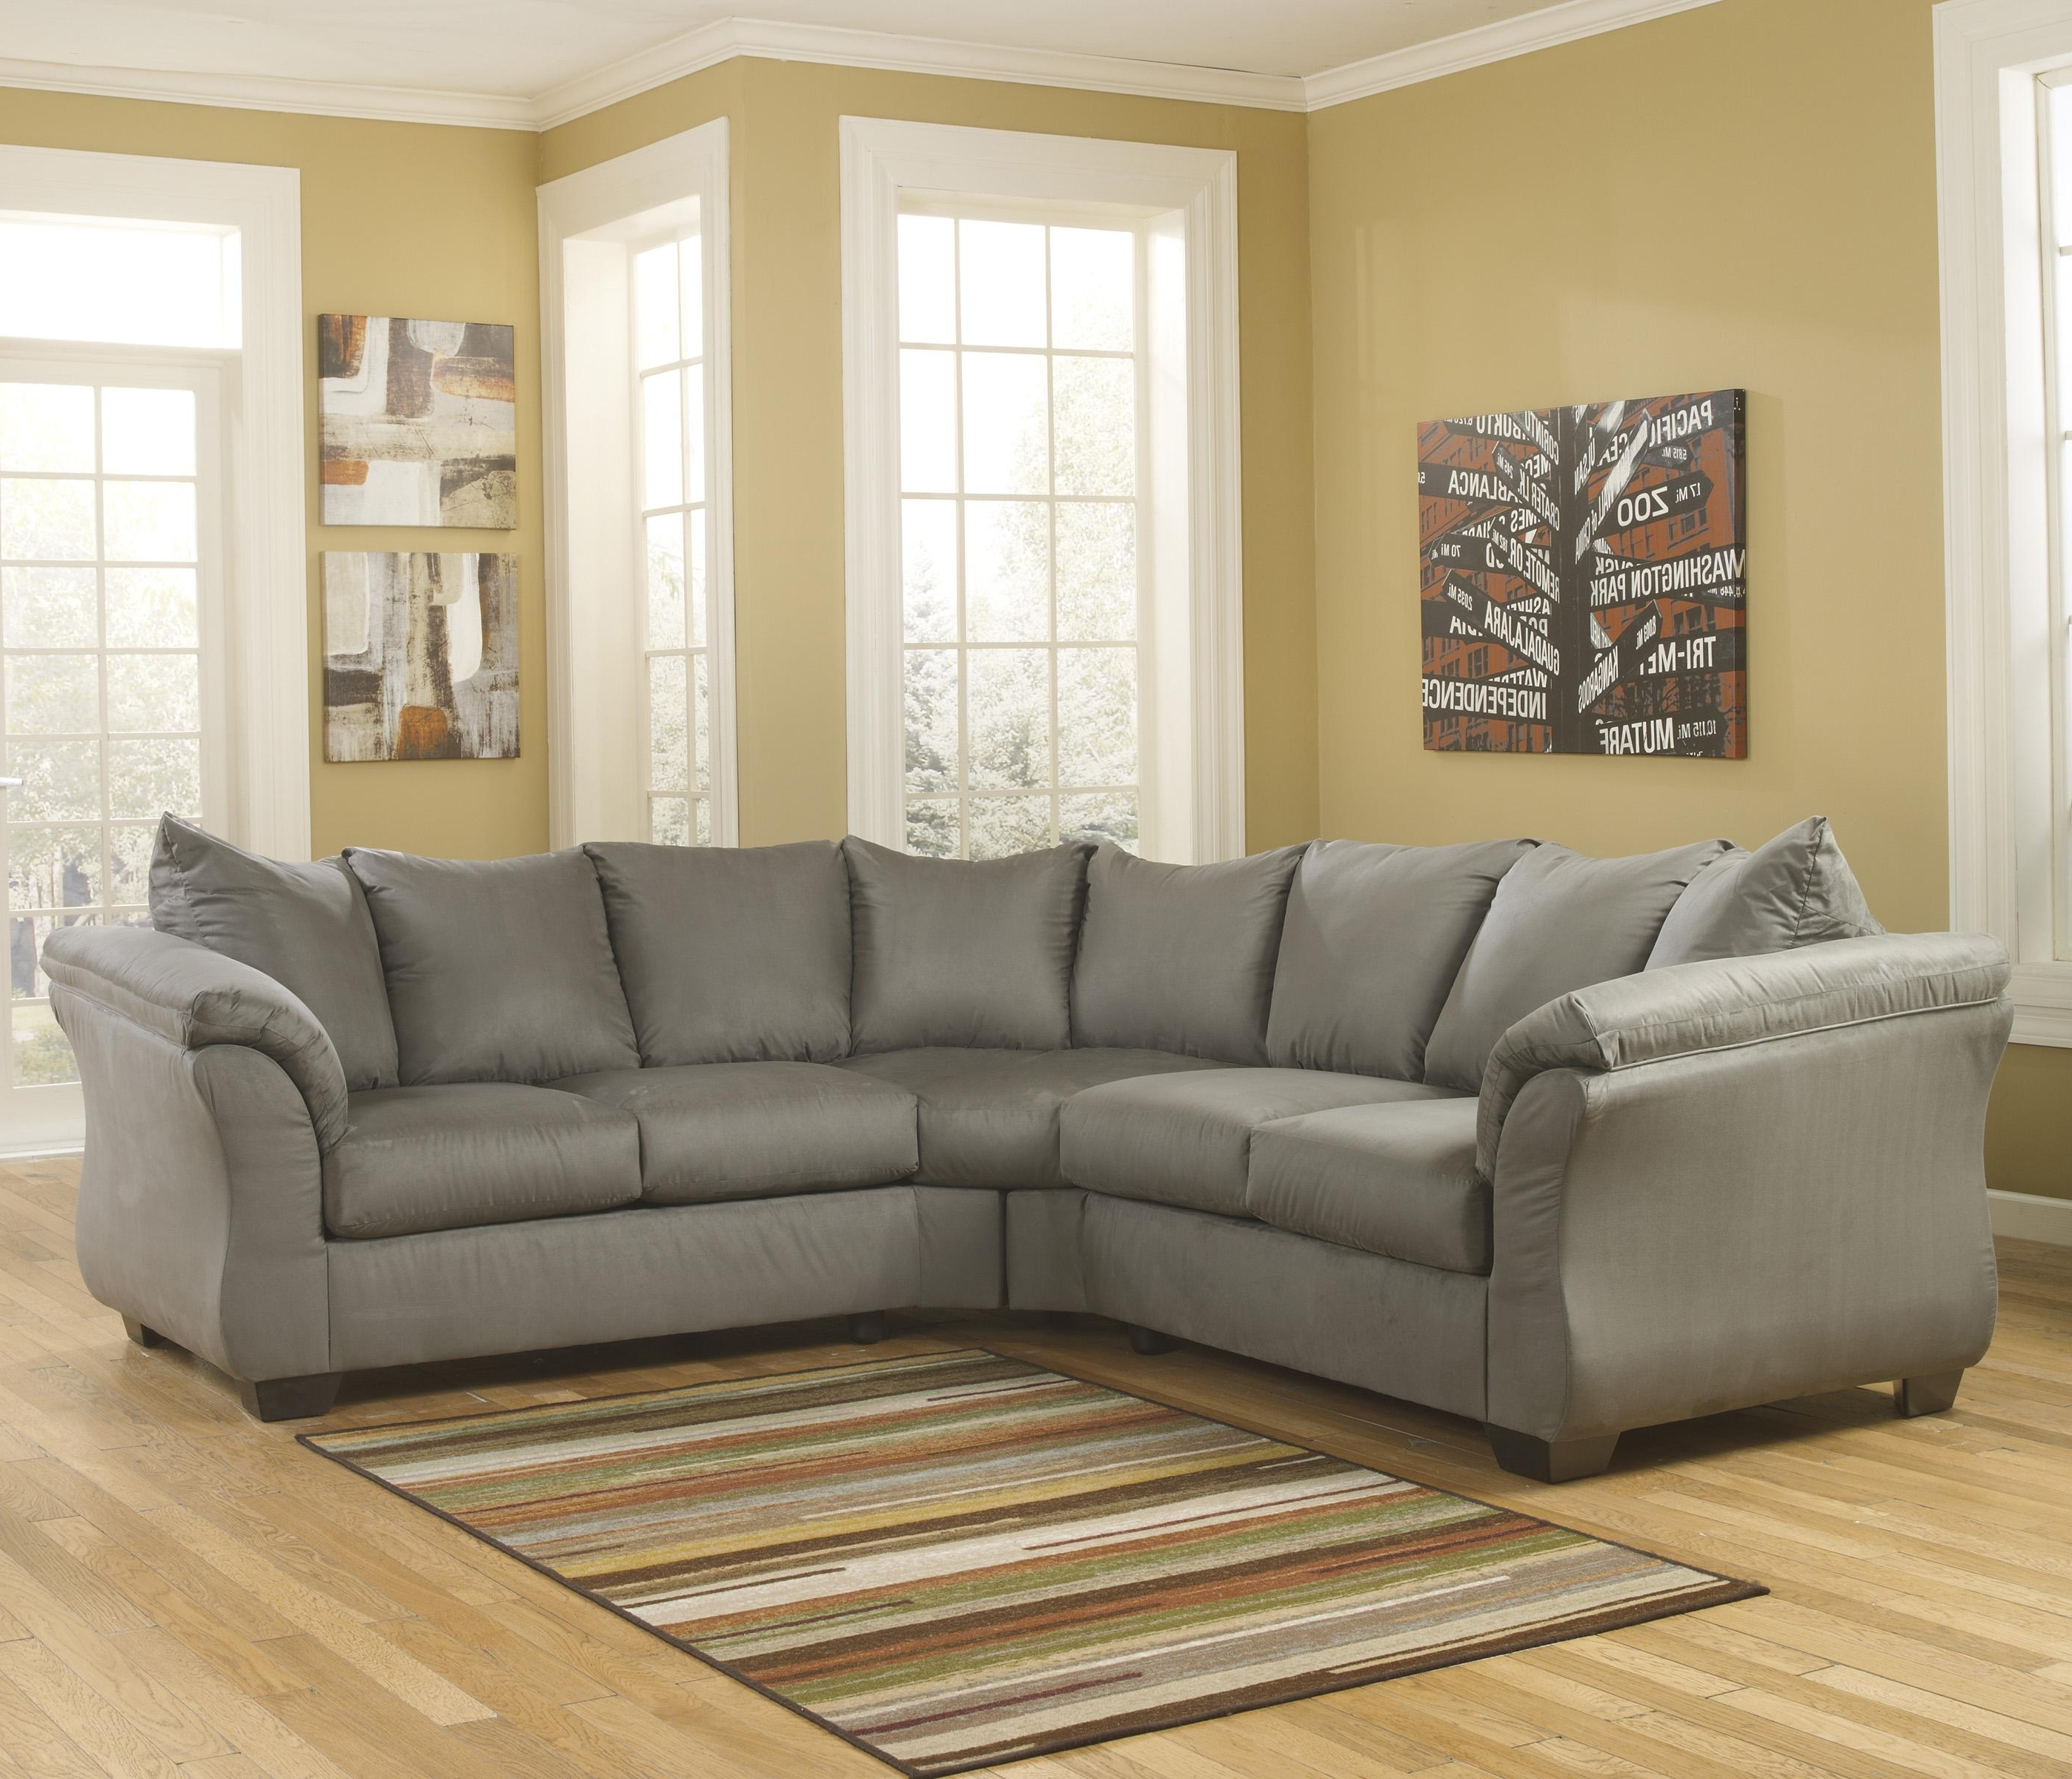 Best And Newest Signature Designashley Darcy – Cobblestone Contemporary Throughout 102X102 Sectional Sofas (View 5 of 15)